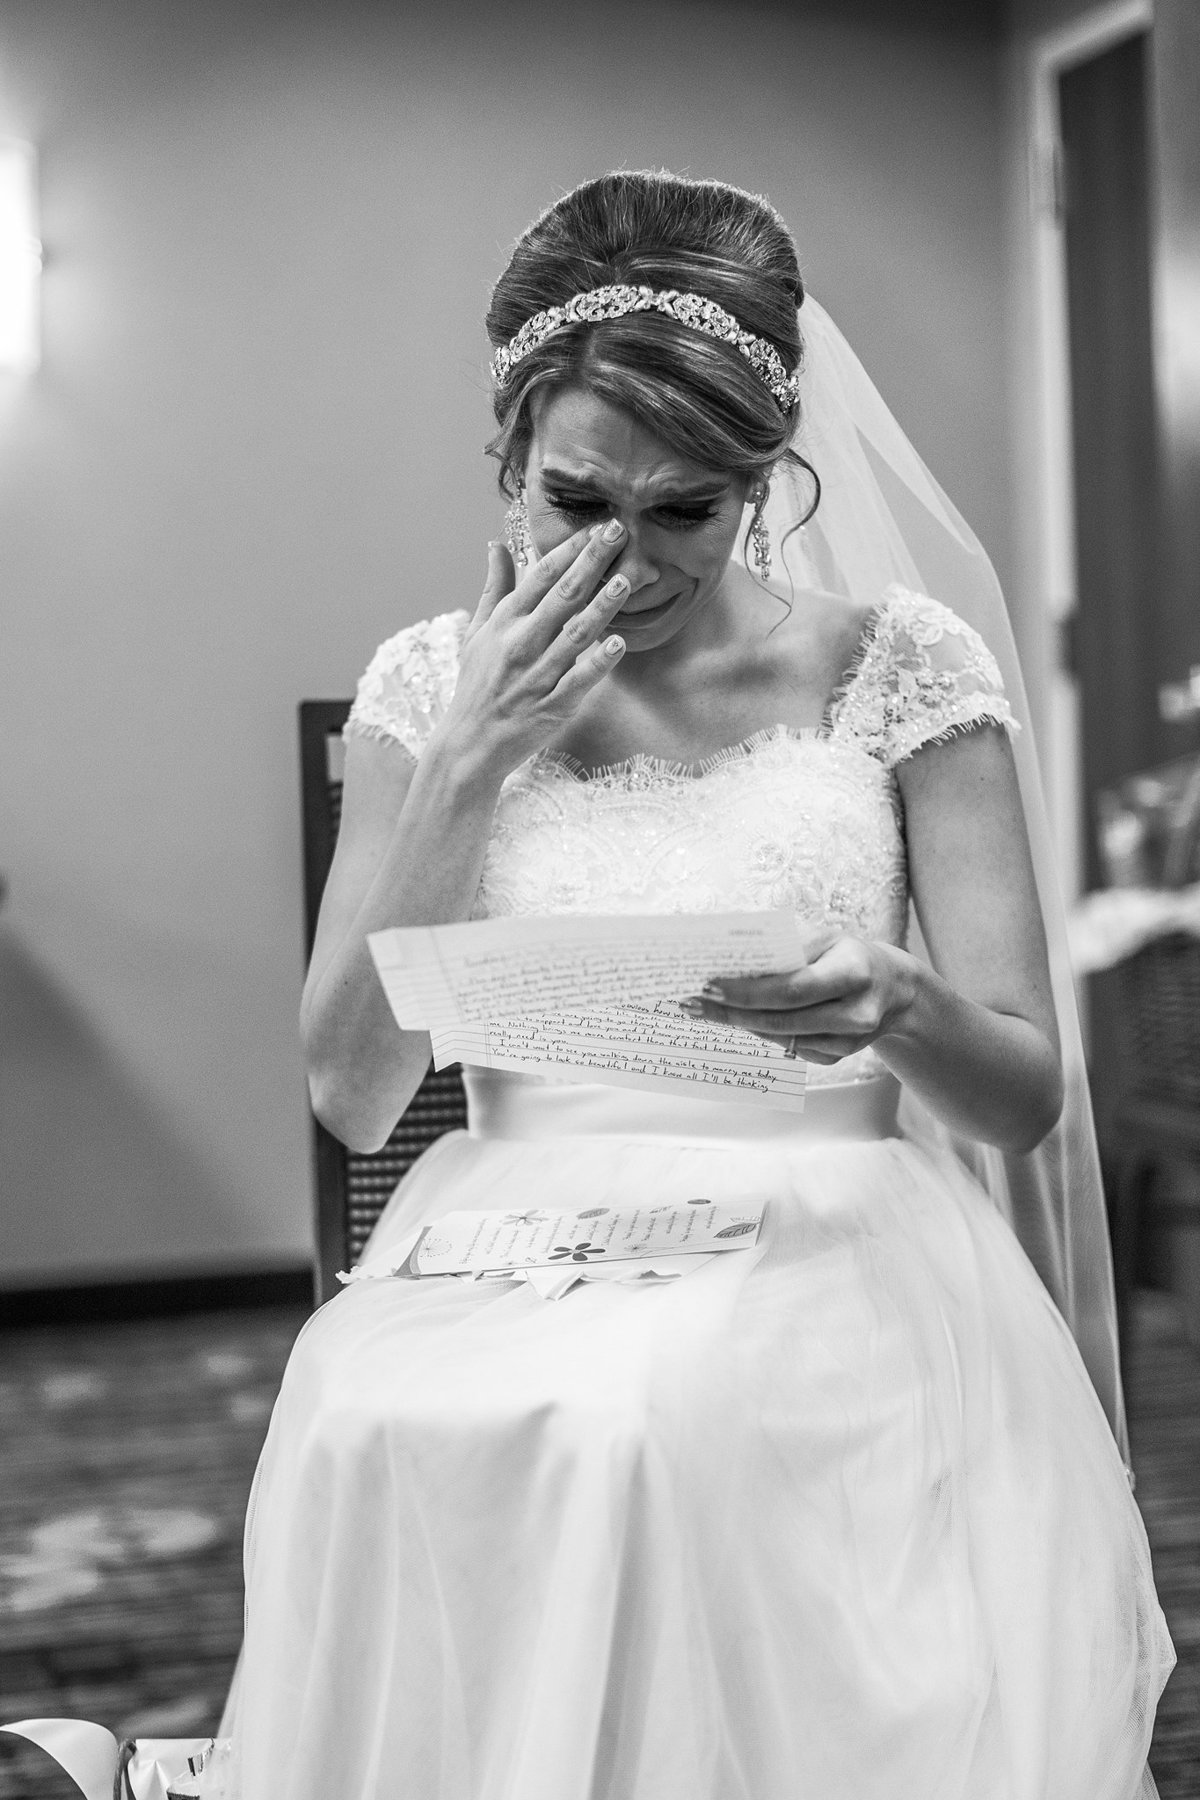 bride reading her note from groom which makes her cry